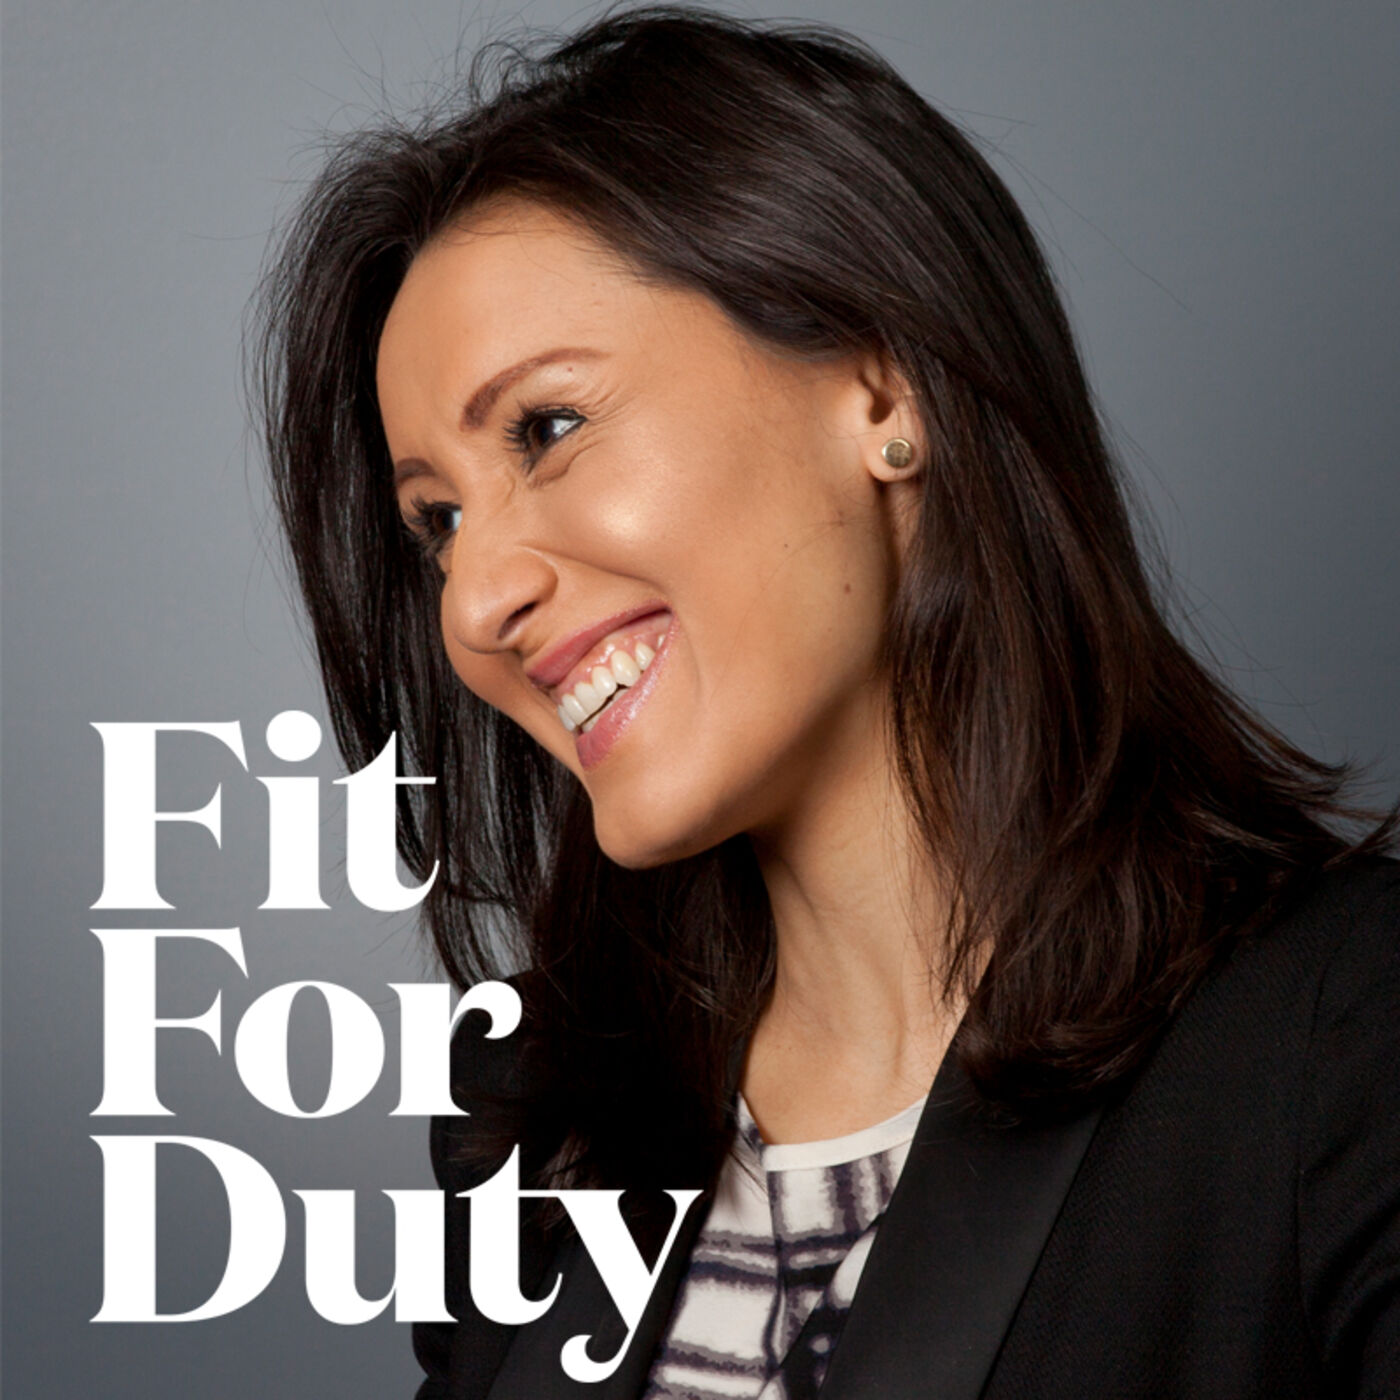 Fit For Duty podcast #1 - Health care trends in 2020 and beyond